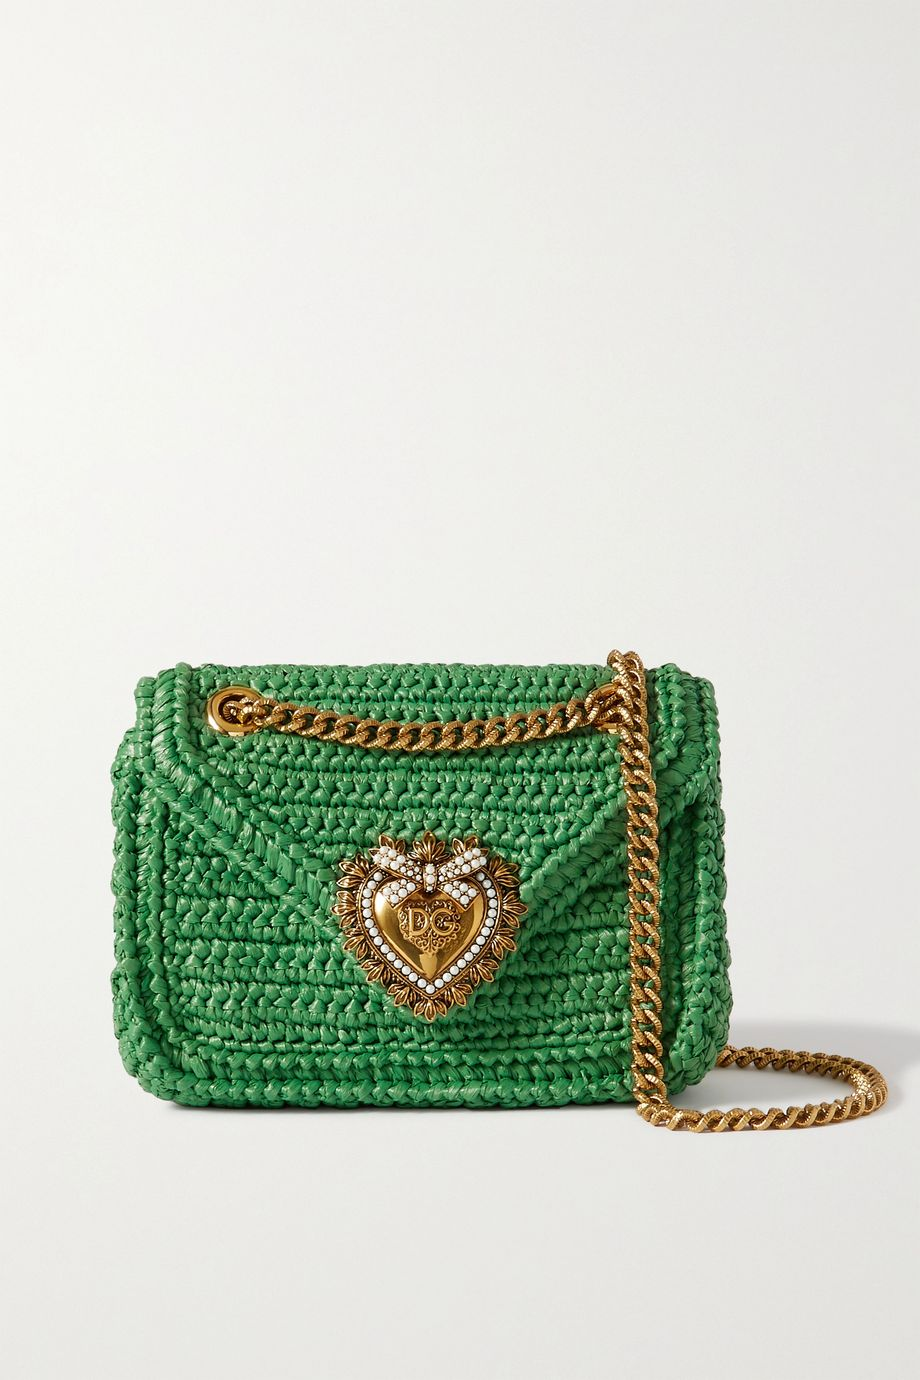 Dolce & Gabbana Devotion small embellished raffia shoulder bag